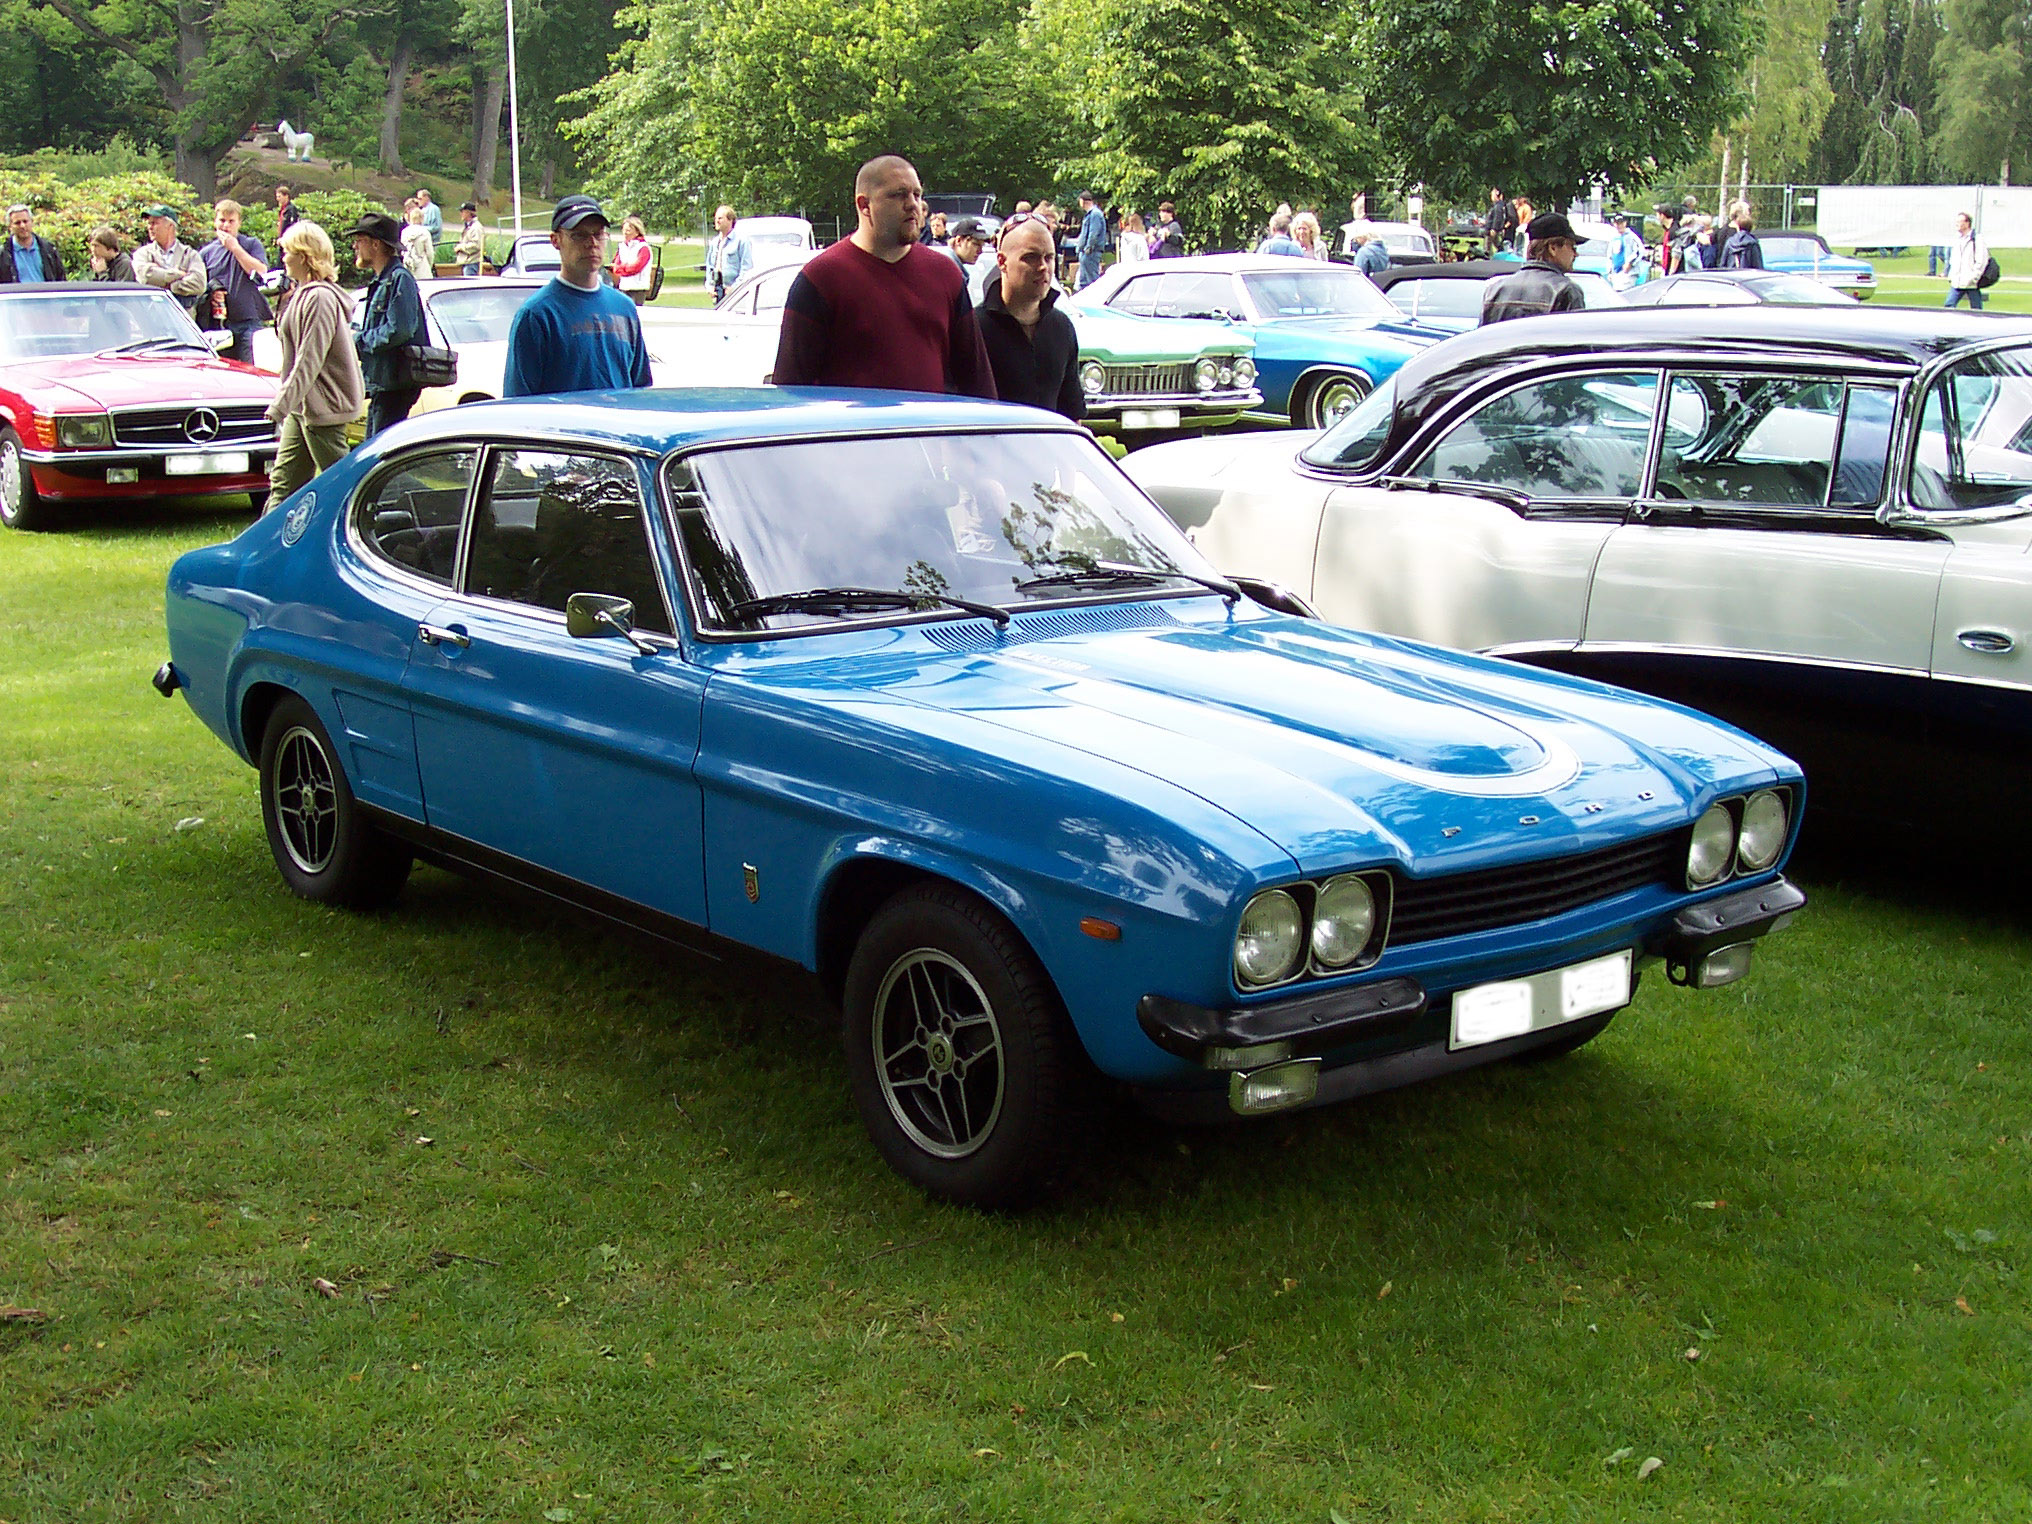 1000 images about cars ford capri on pinterest ford capri mk1 and capri. Black Bedroom Furniture Sets. Home Design Ideas